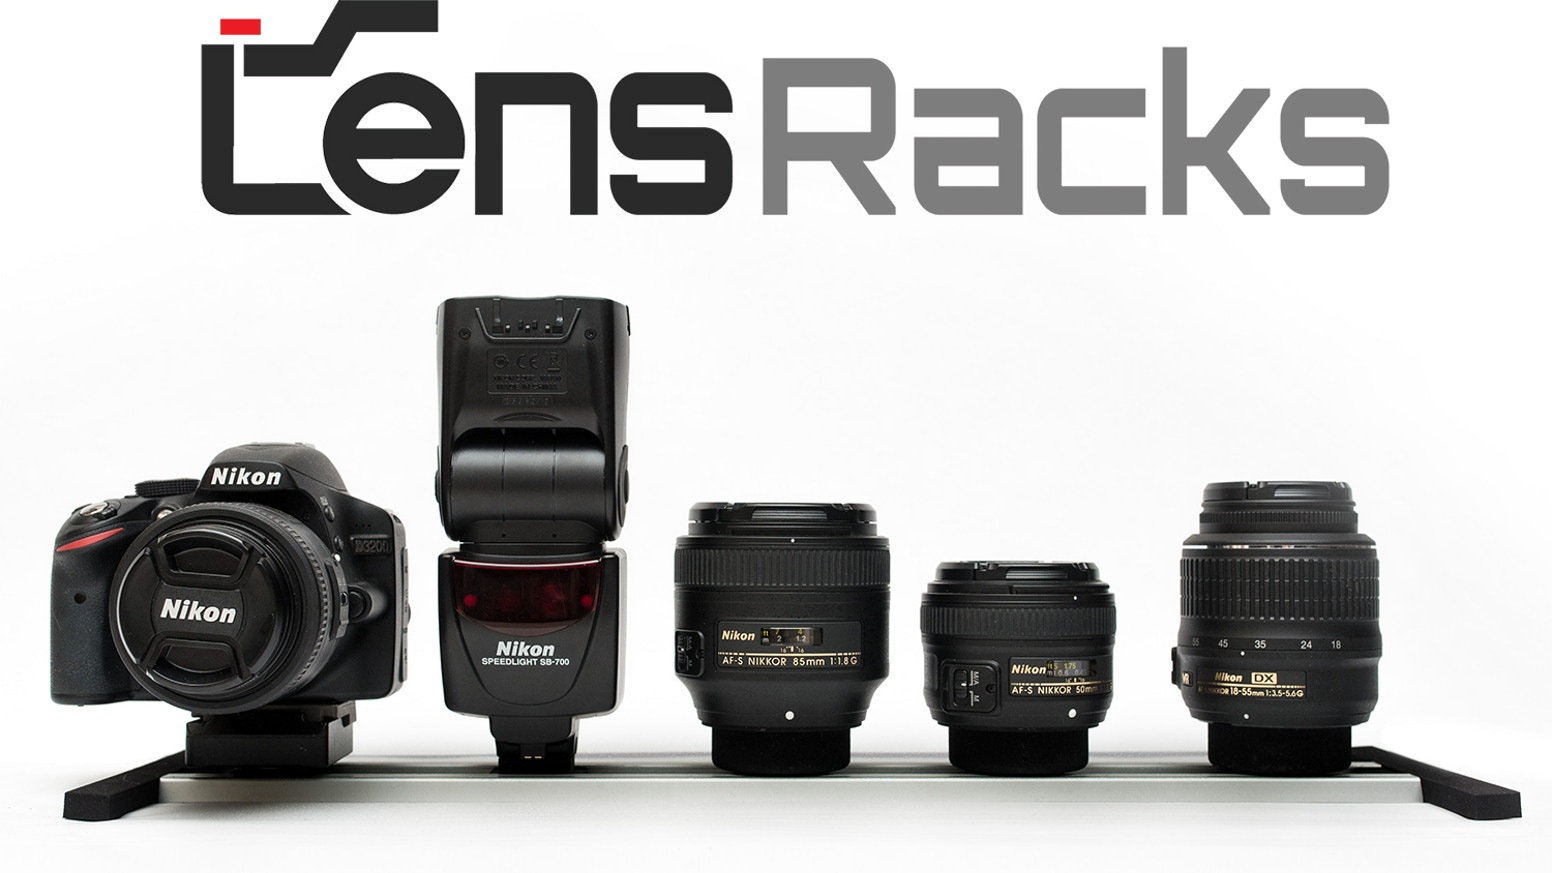 LensRacks is a modular camera lens and gear storage system that allows for swift lens changes.